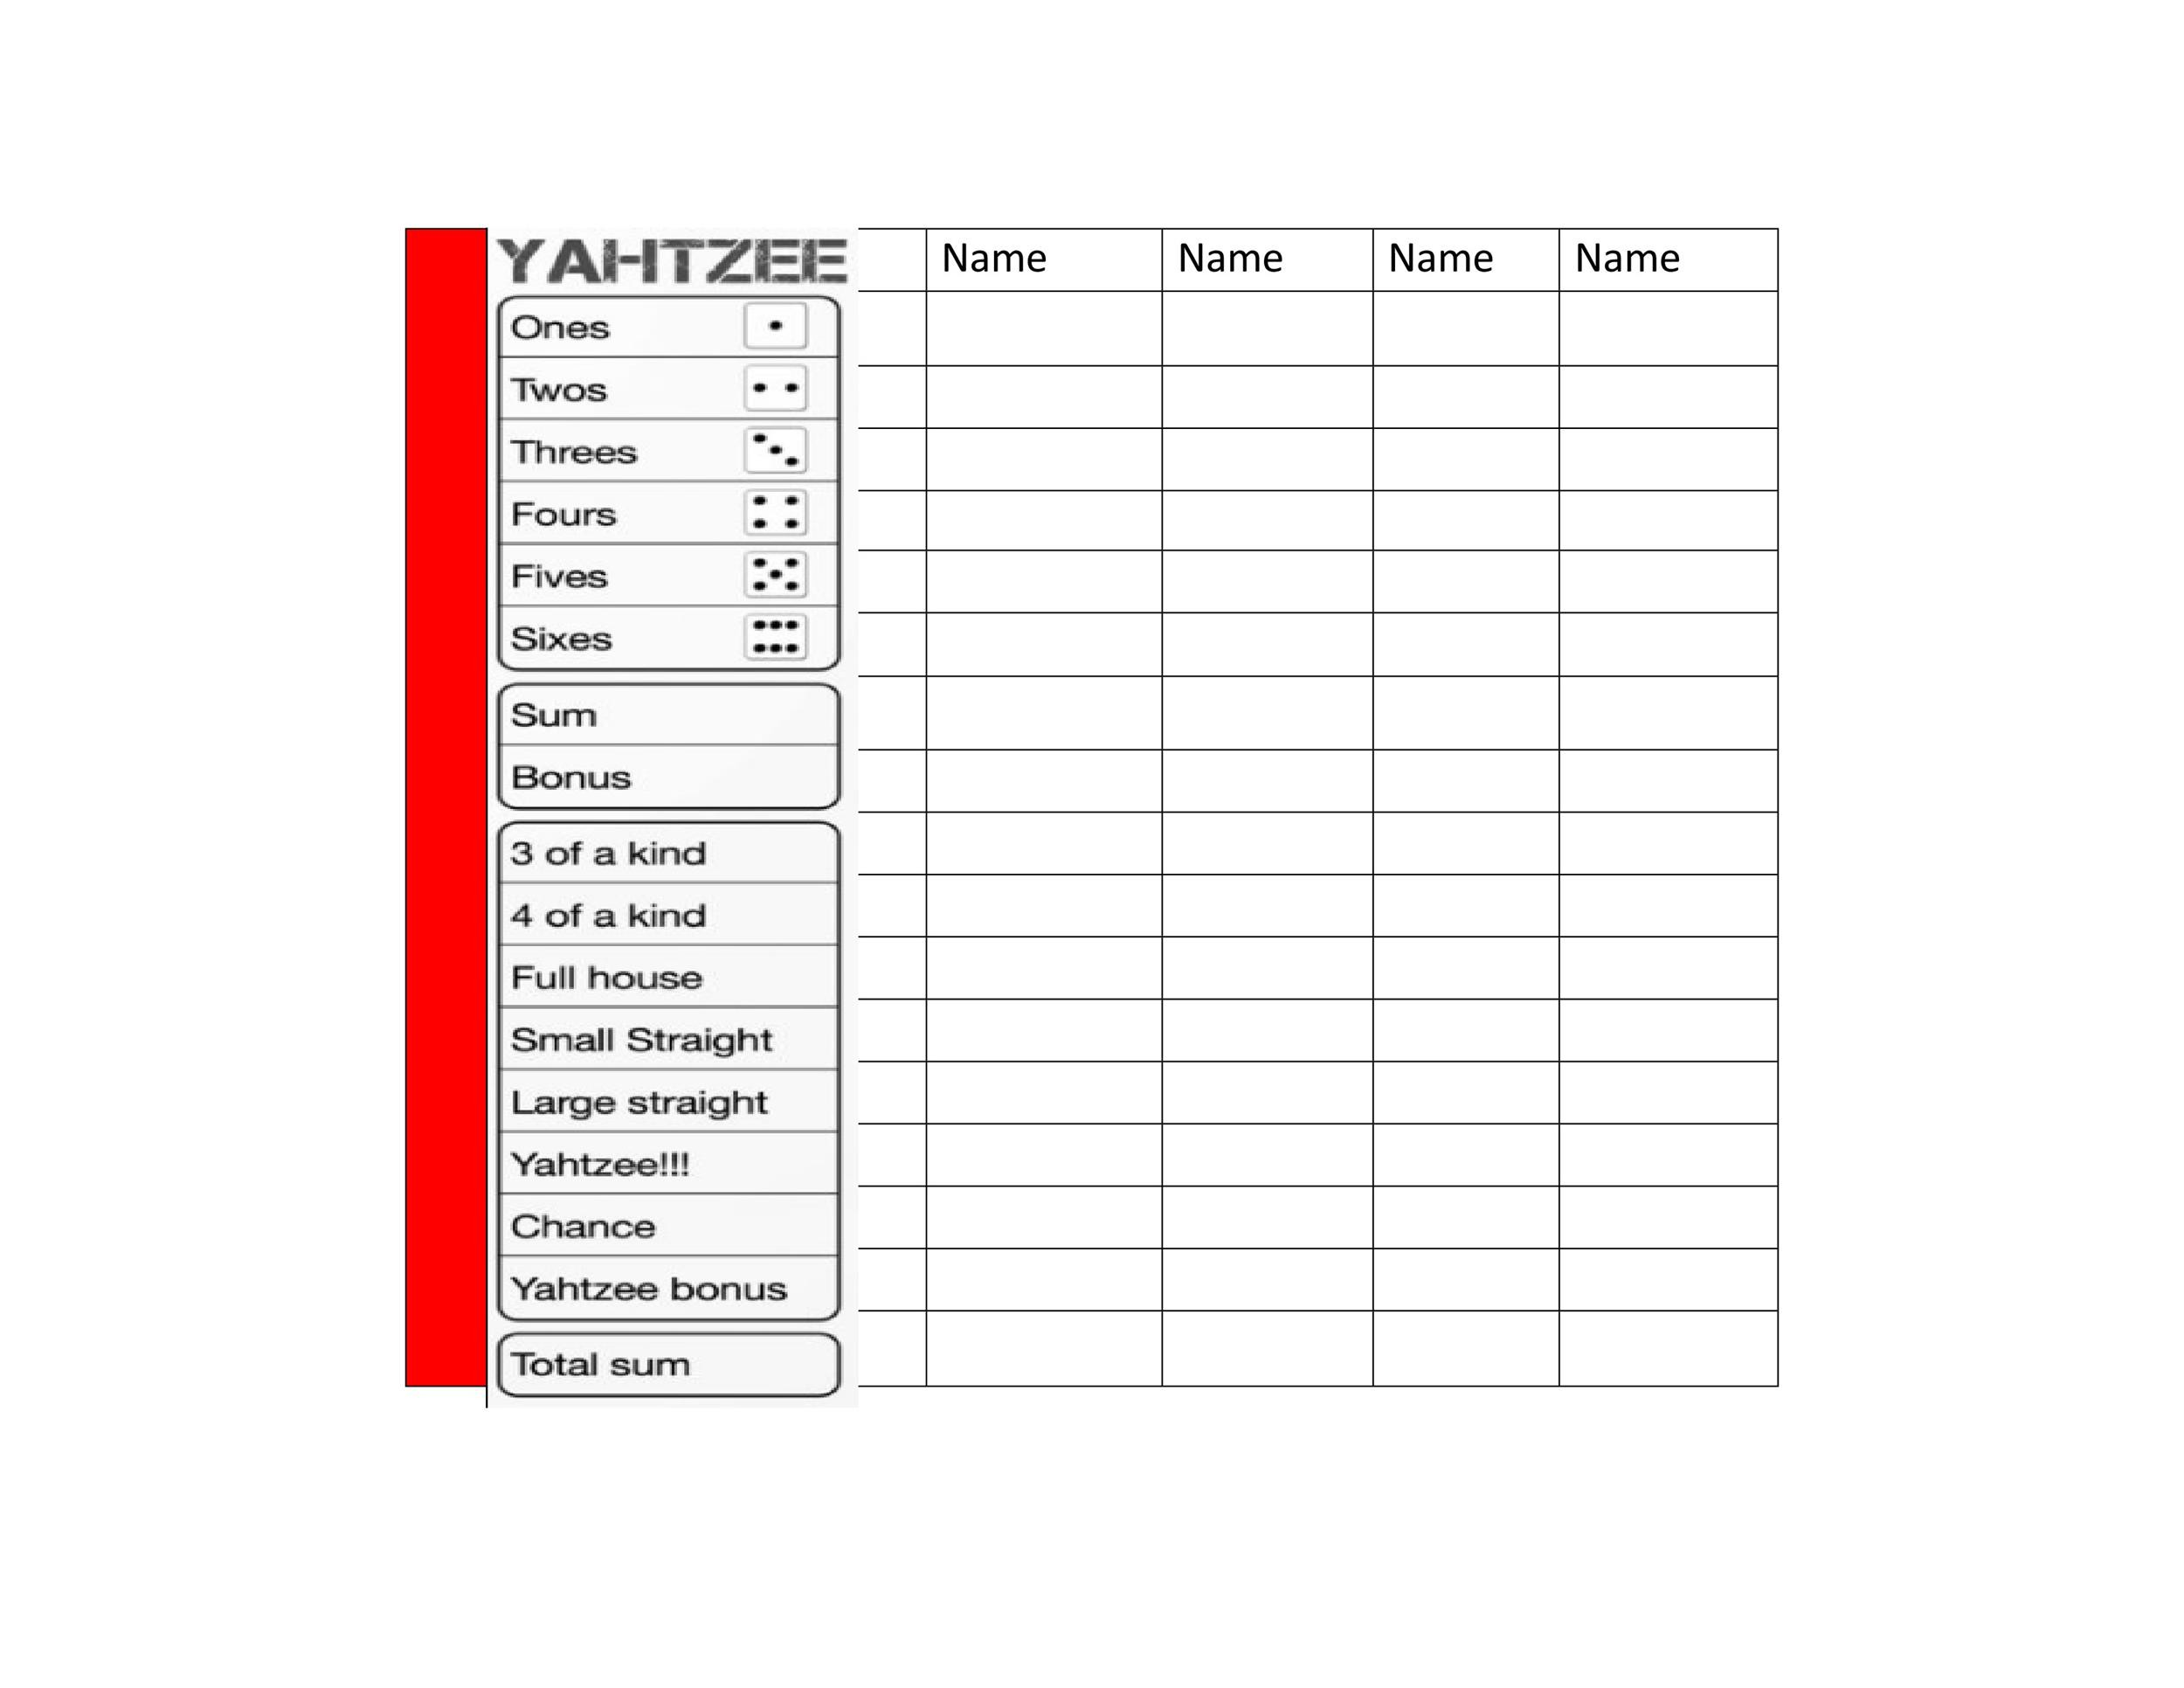 28 Printable Yahtzee Score Sheets  Cards (101 FREE) ᐅ Template Lab